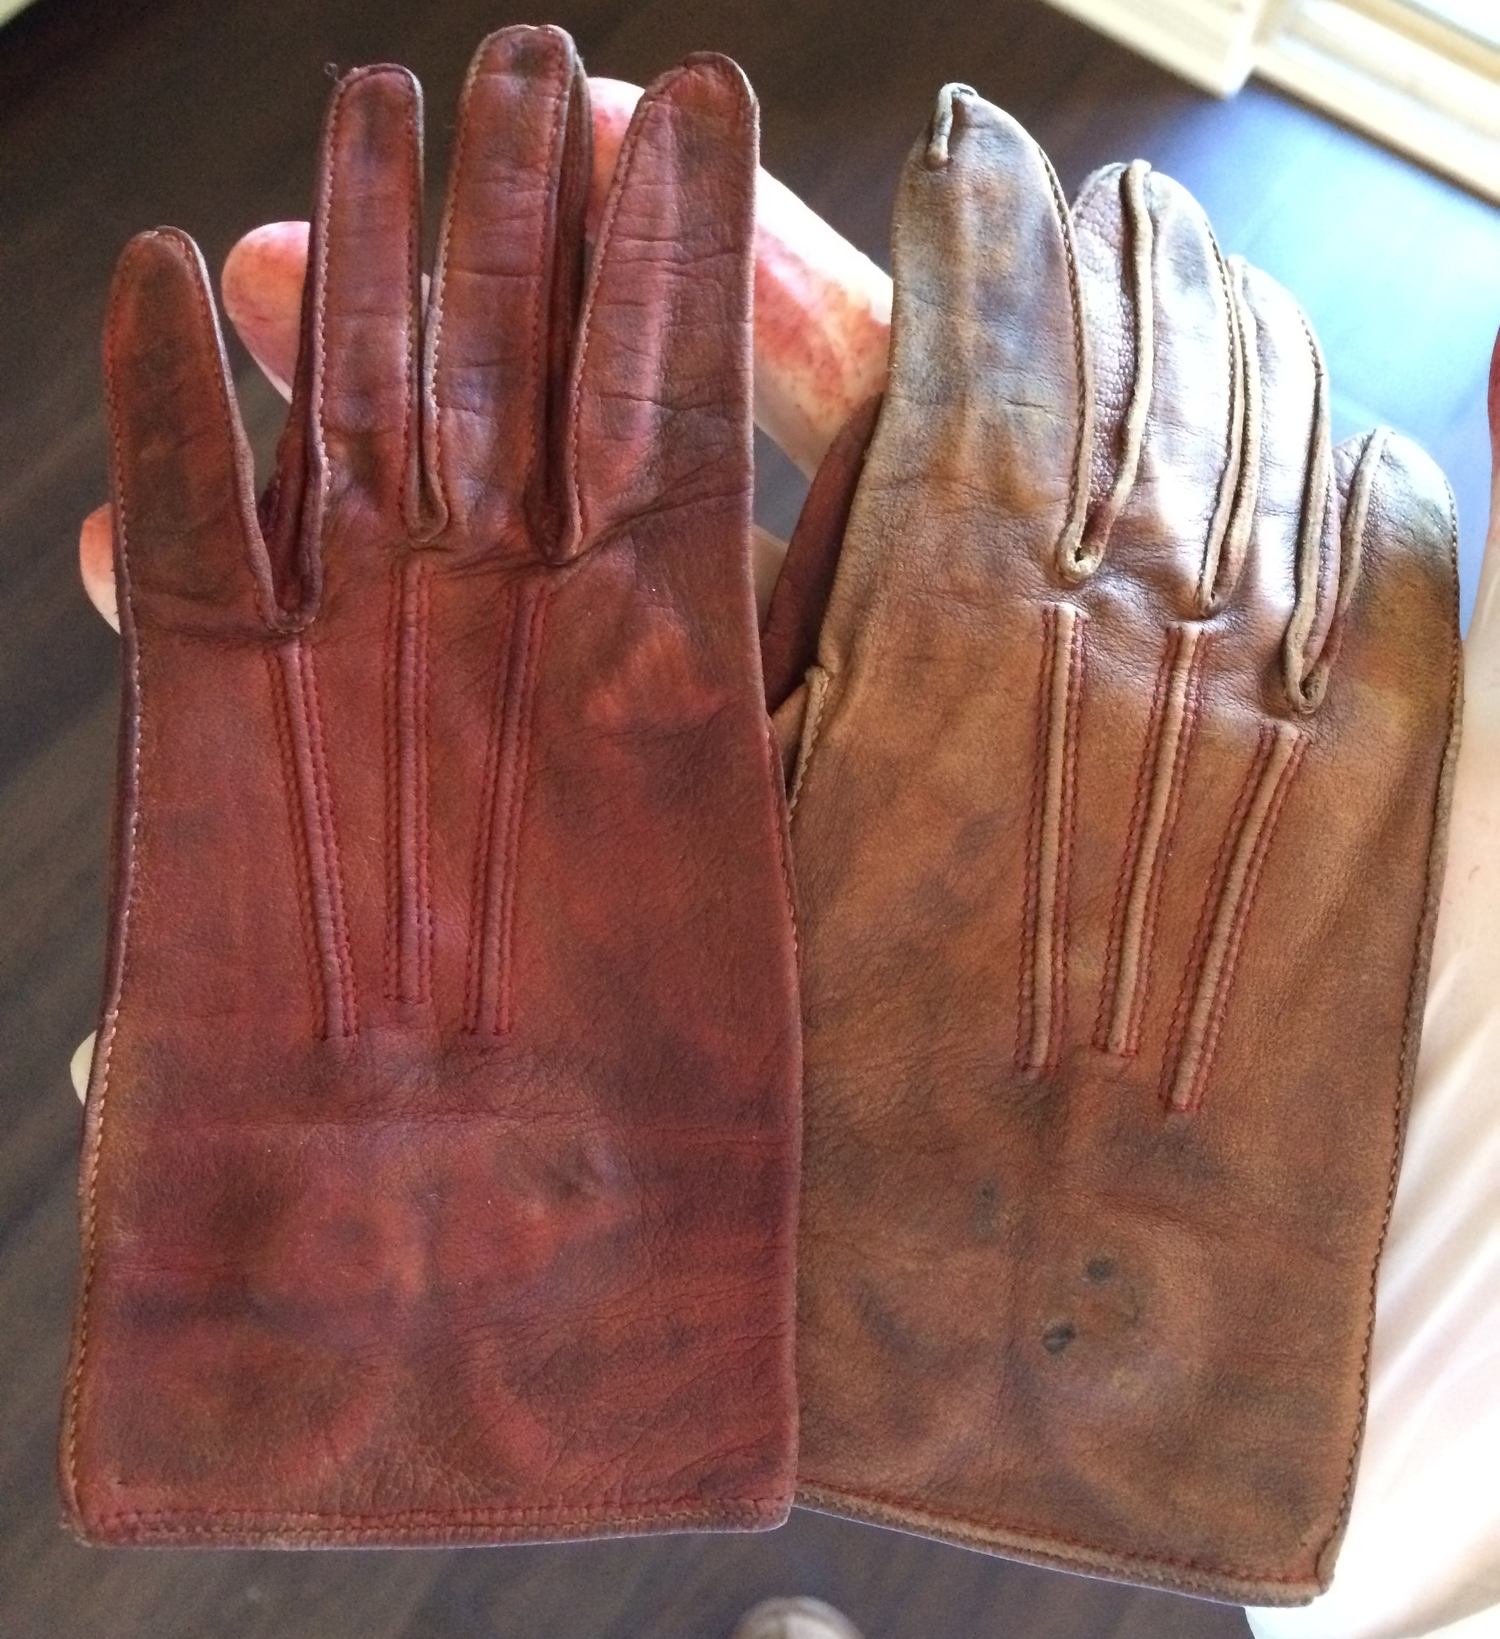 Dyed glove, before (right) and after (left)